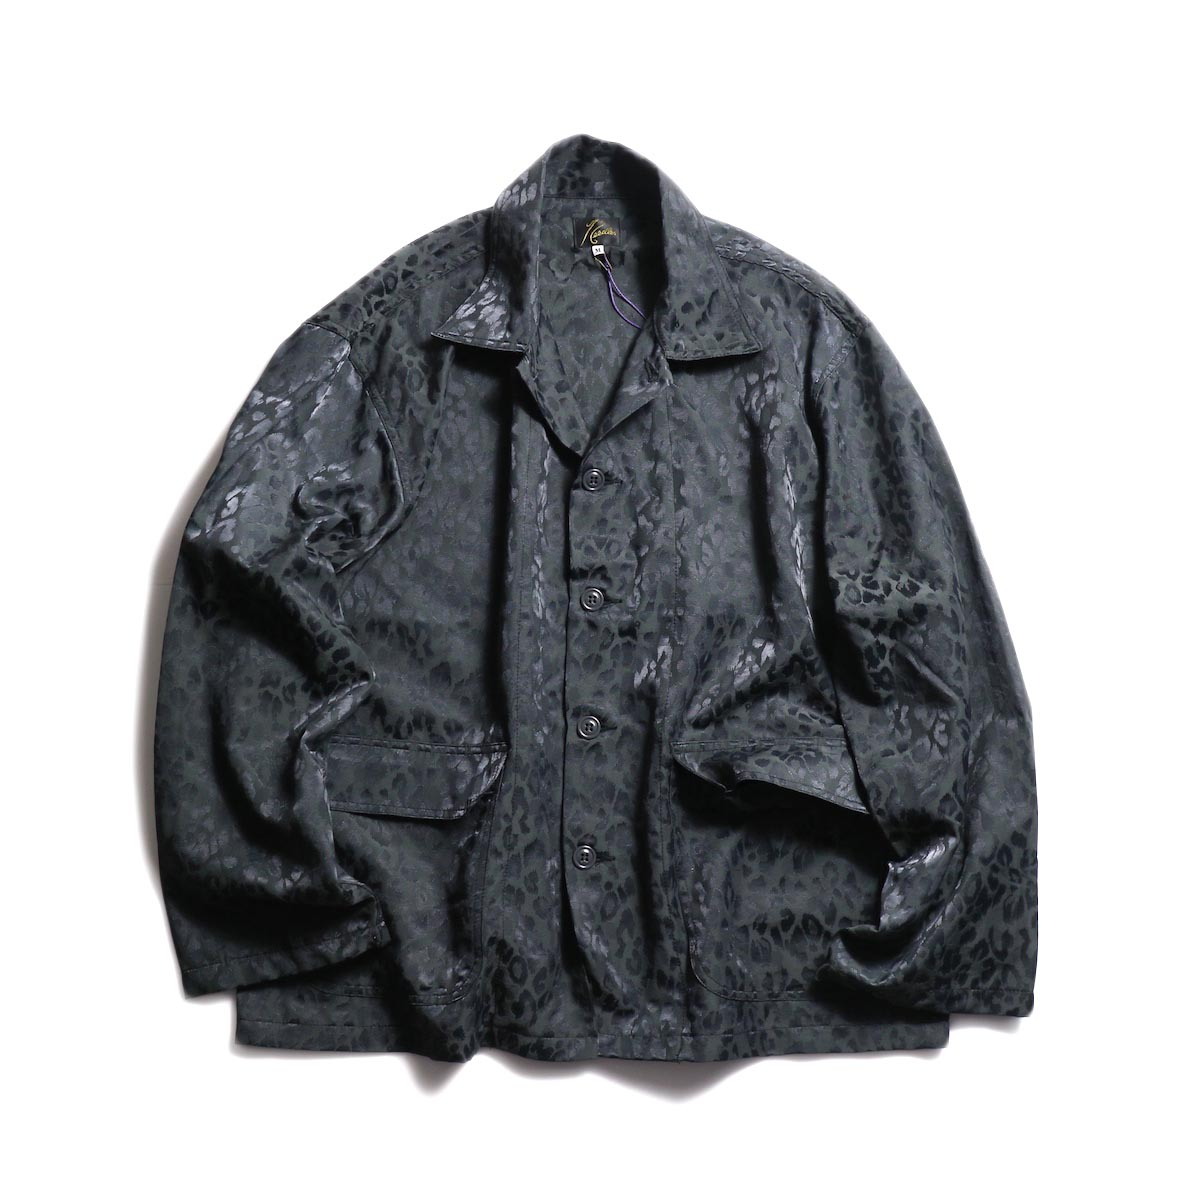 NEEDLES / Bush Jacket -c/n Leopard Jacquard